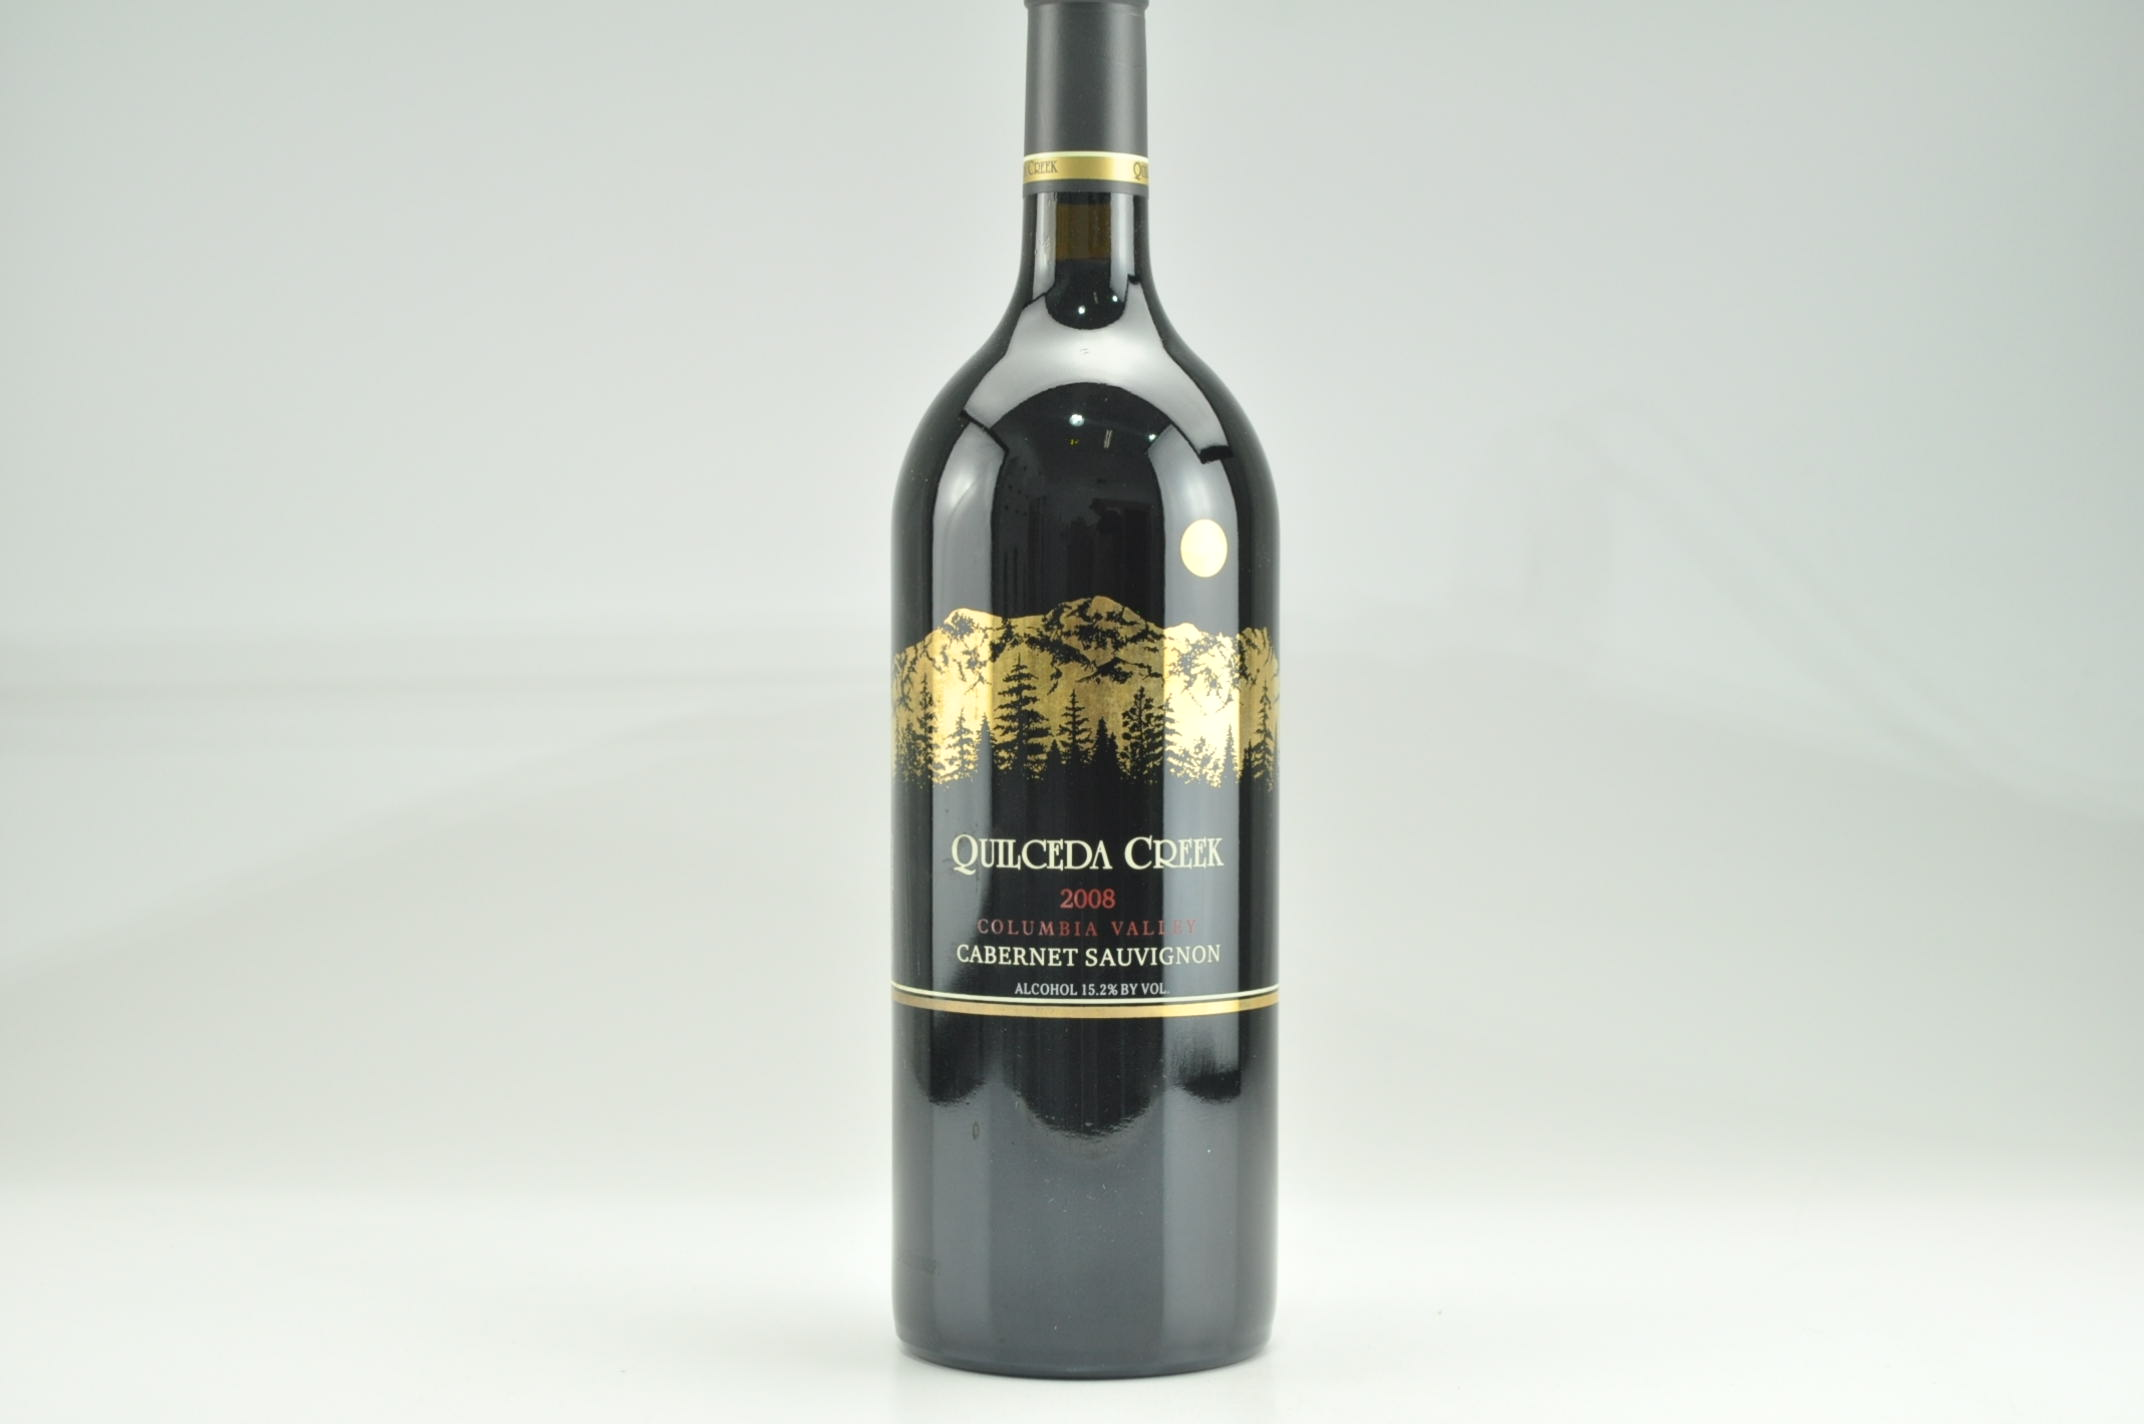 2008 Quilceda Creek Cabernet Sauvignon, Columbia Valley 1.5 L RP--97